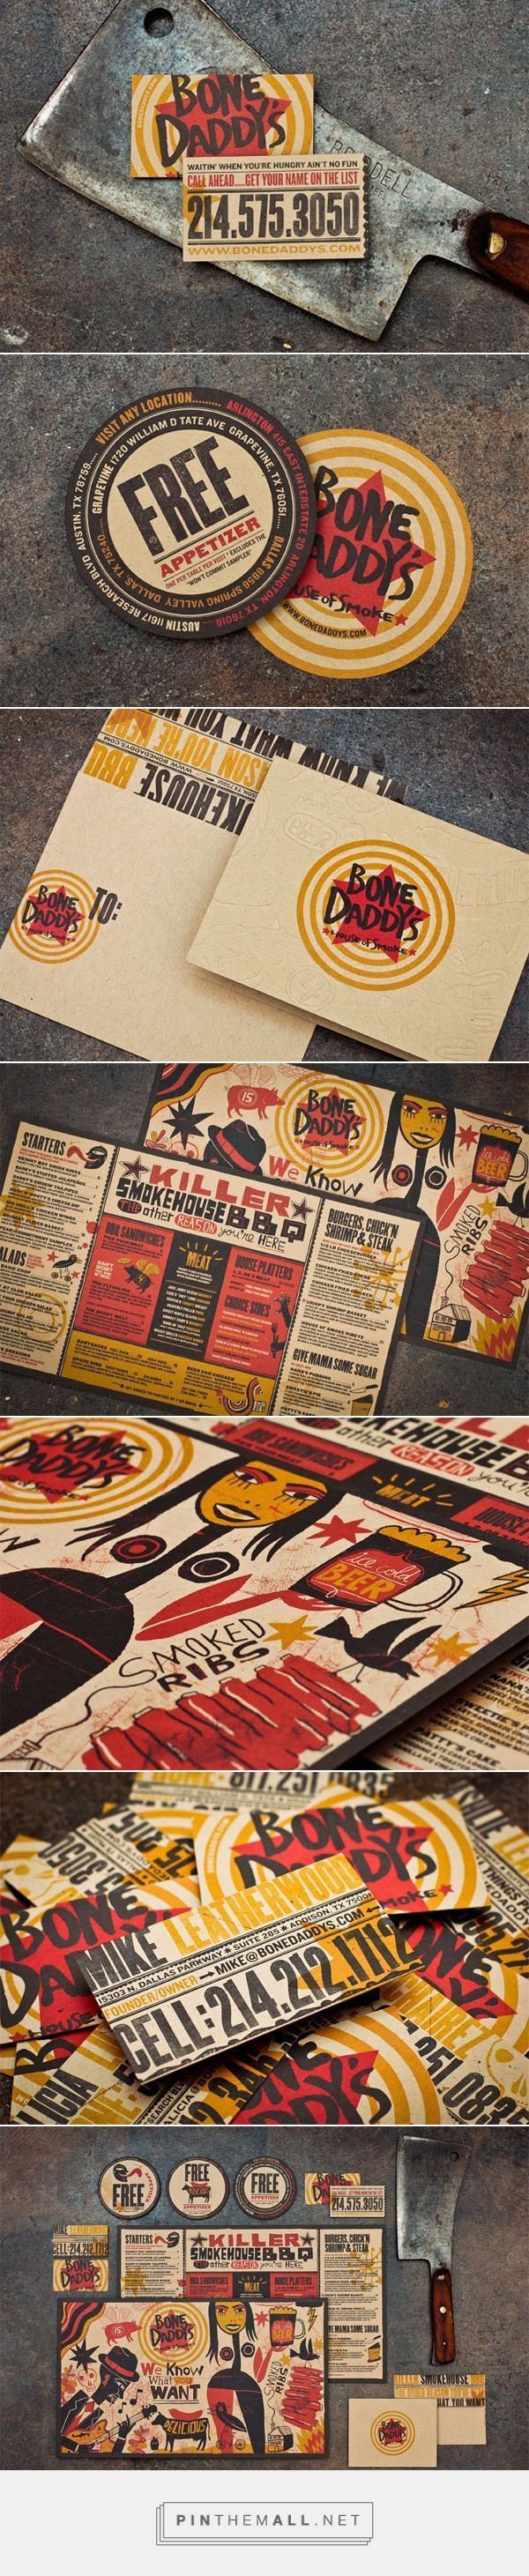 Food infographic  Food infographic  FPO: Bone Daddy's BBQ Restaurant Branding and Menu Design